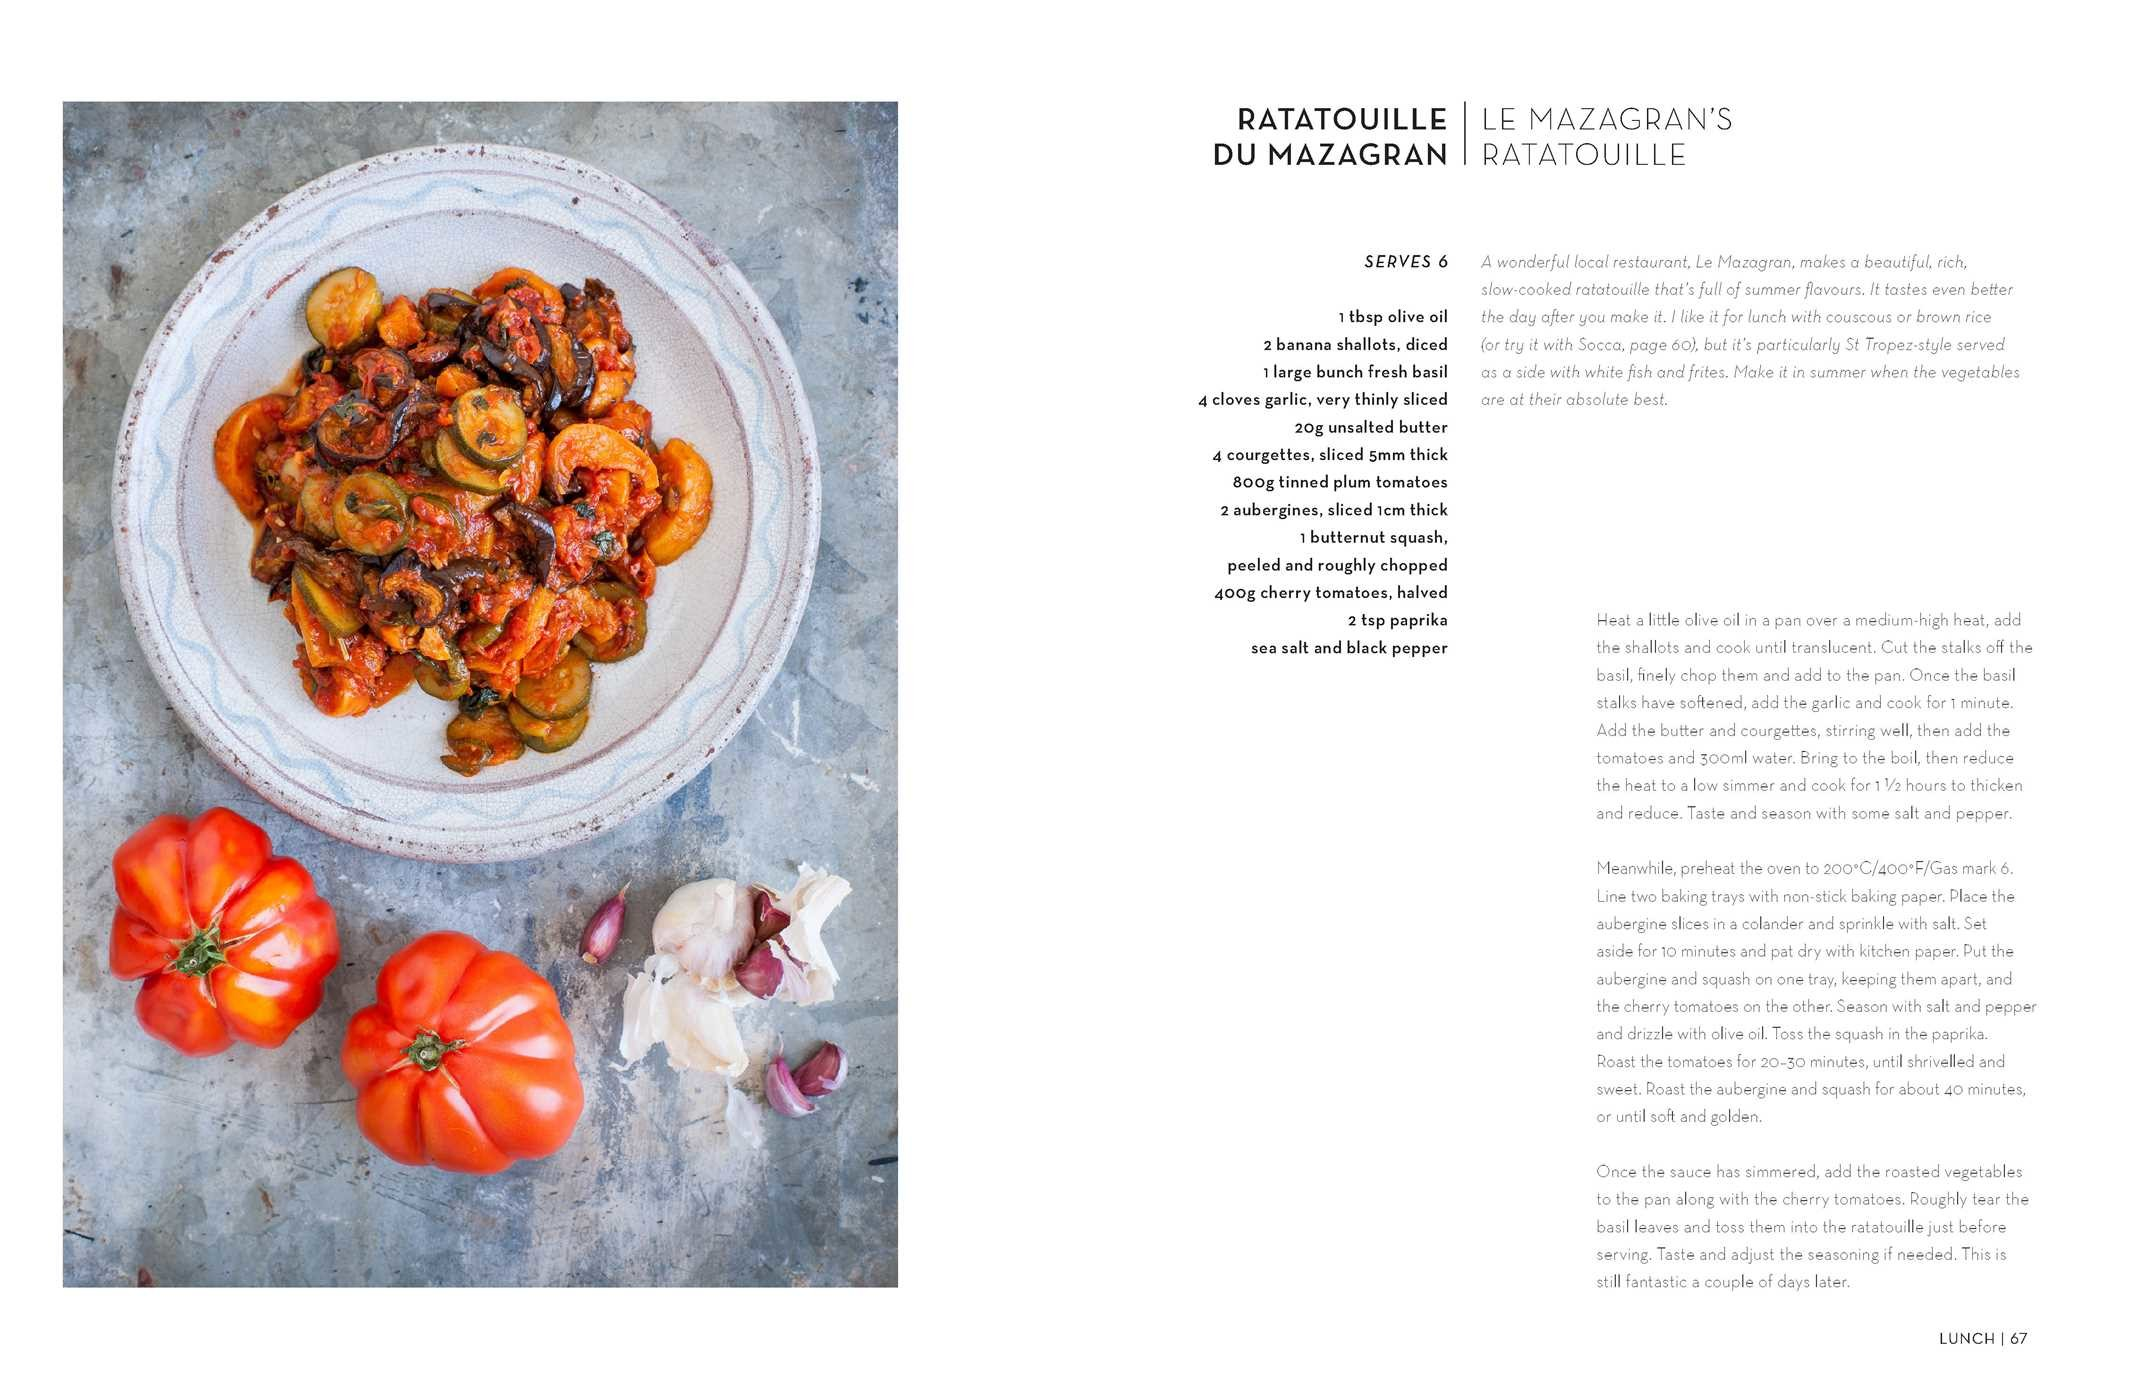 South of France cookbook ratatouille.